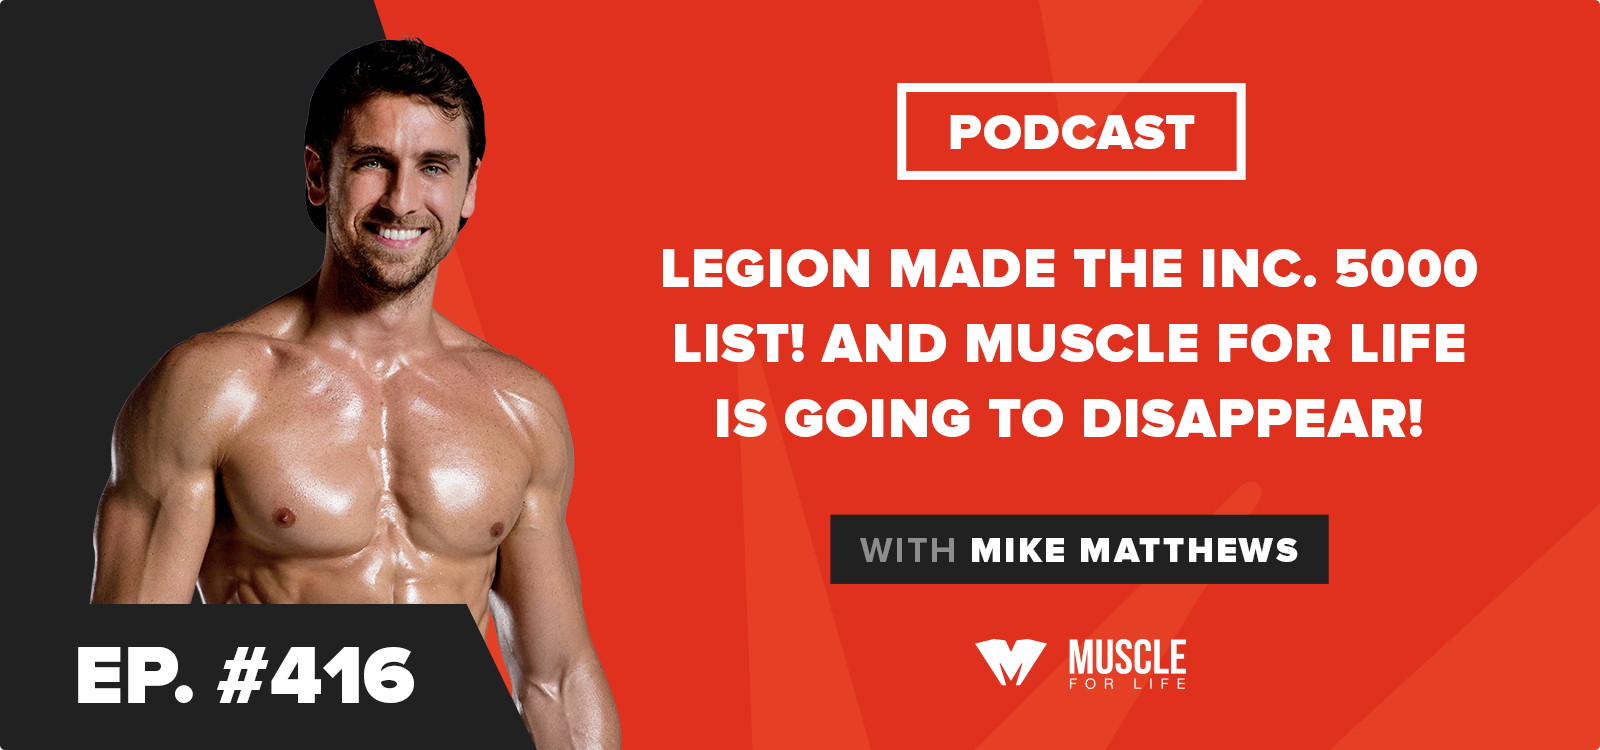 Legion made the Inc. 5000 List! And Muscle for Life Is Going to Disappear!